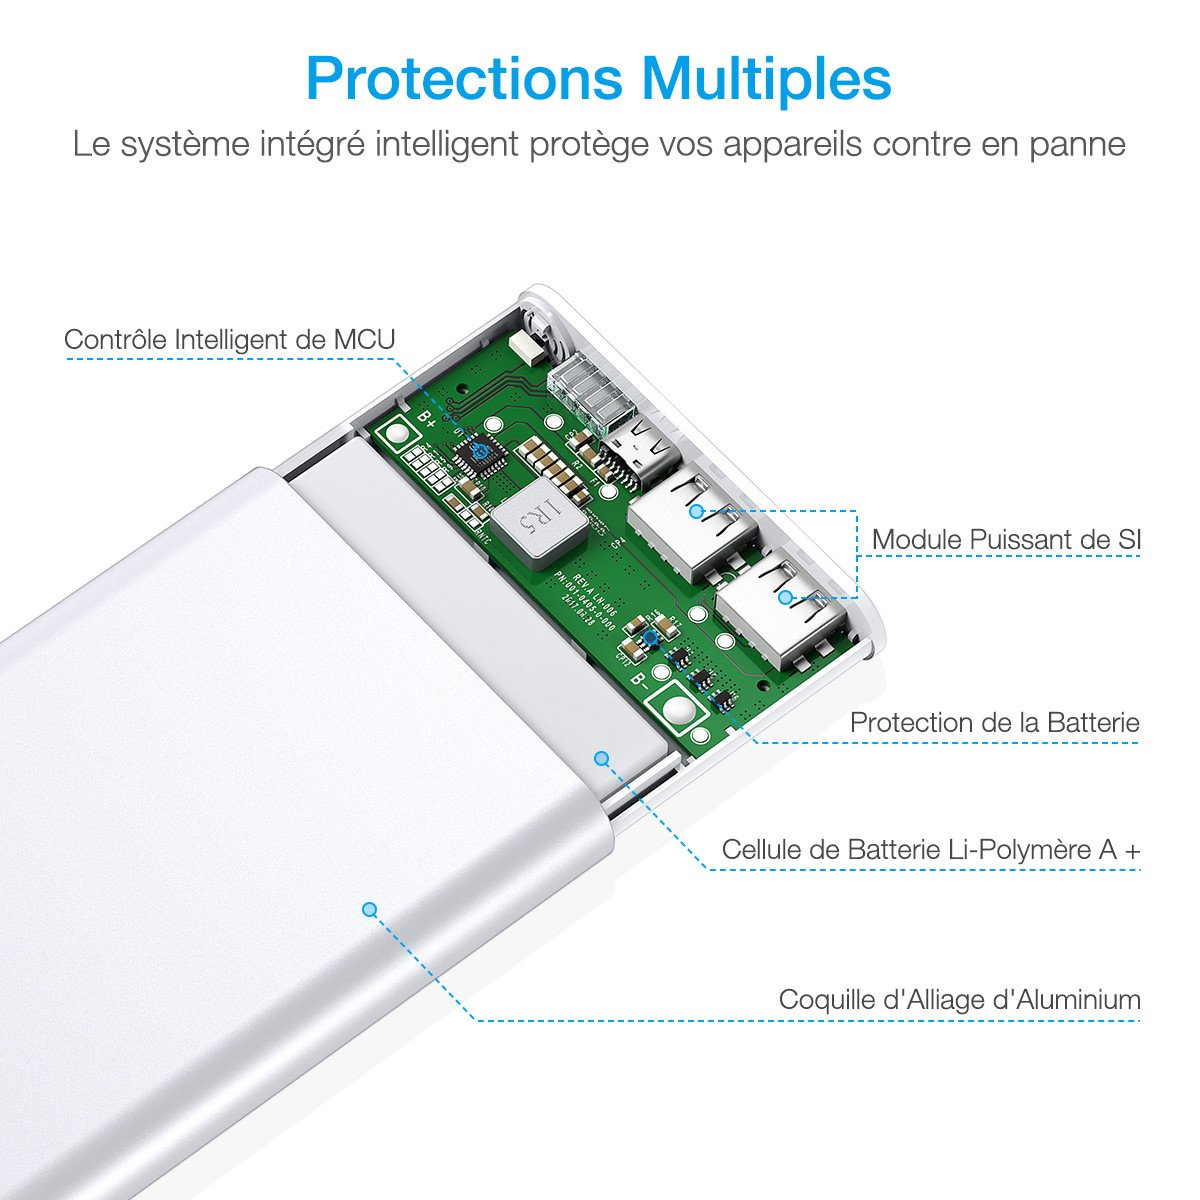 Poweradd Pilot 2GS - Batería externa de 10000 mAh (USB, 1 A / 2.1 A), color blanco: Amazon.es: Electrónica